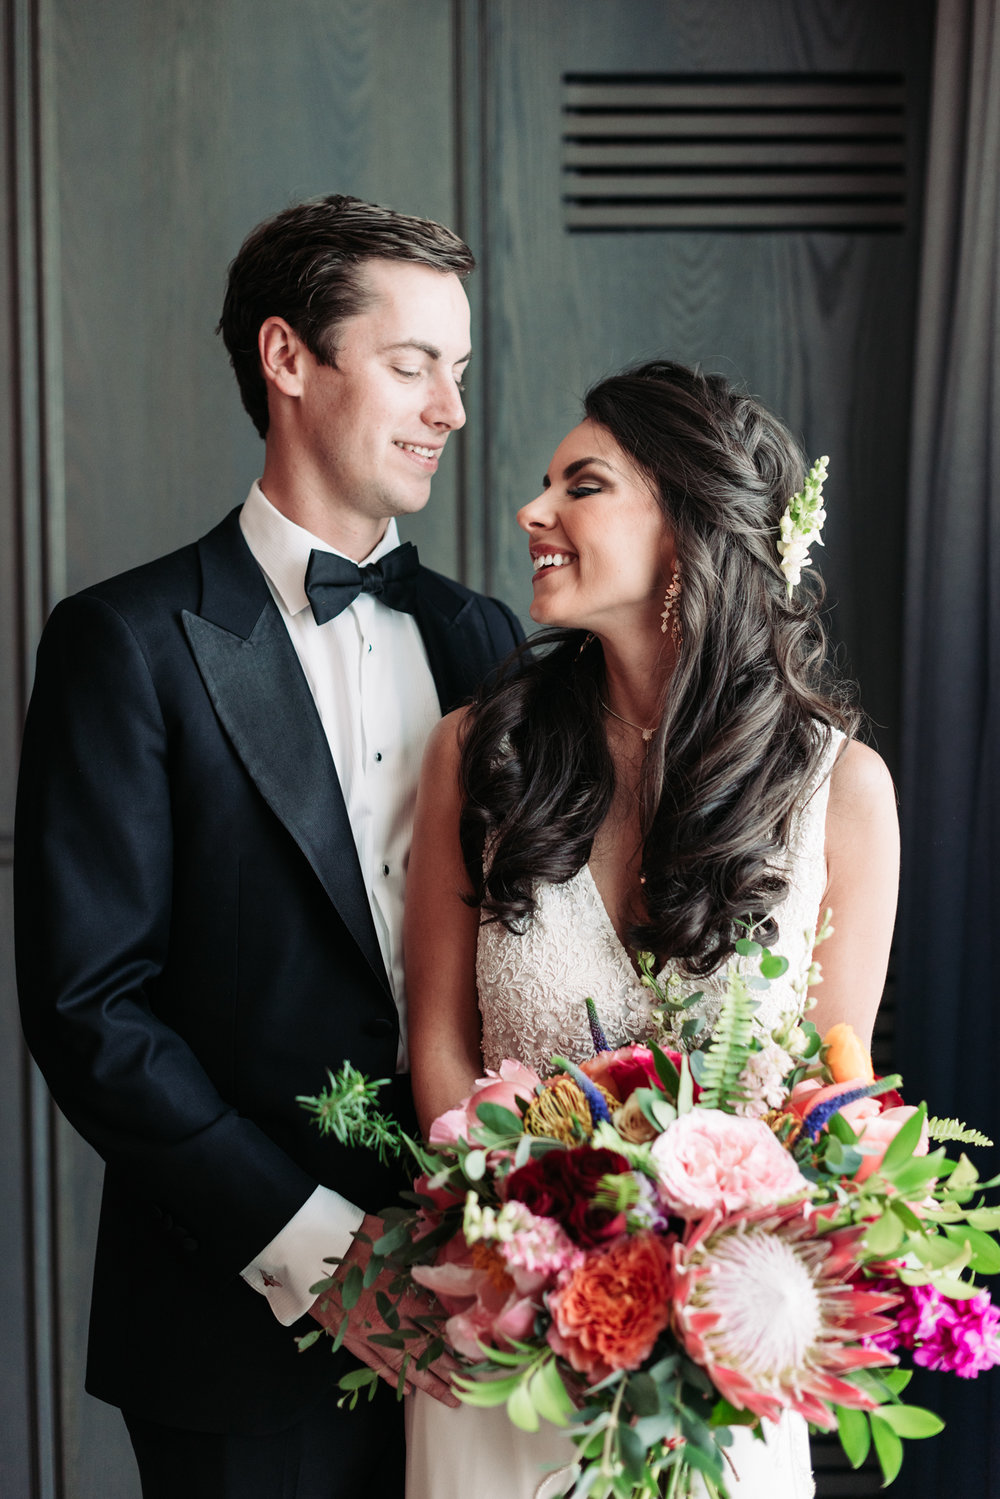 Wedding portrait photography bride groom gown bouquet flowers tuxedo